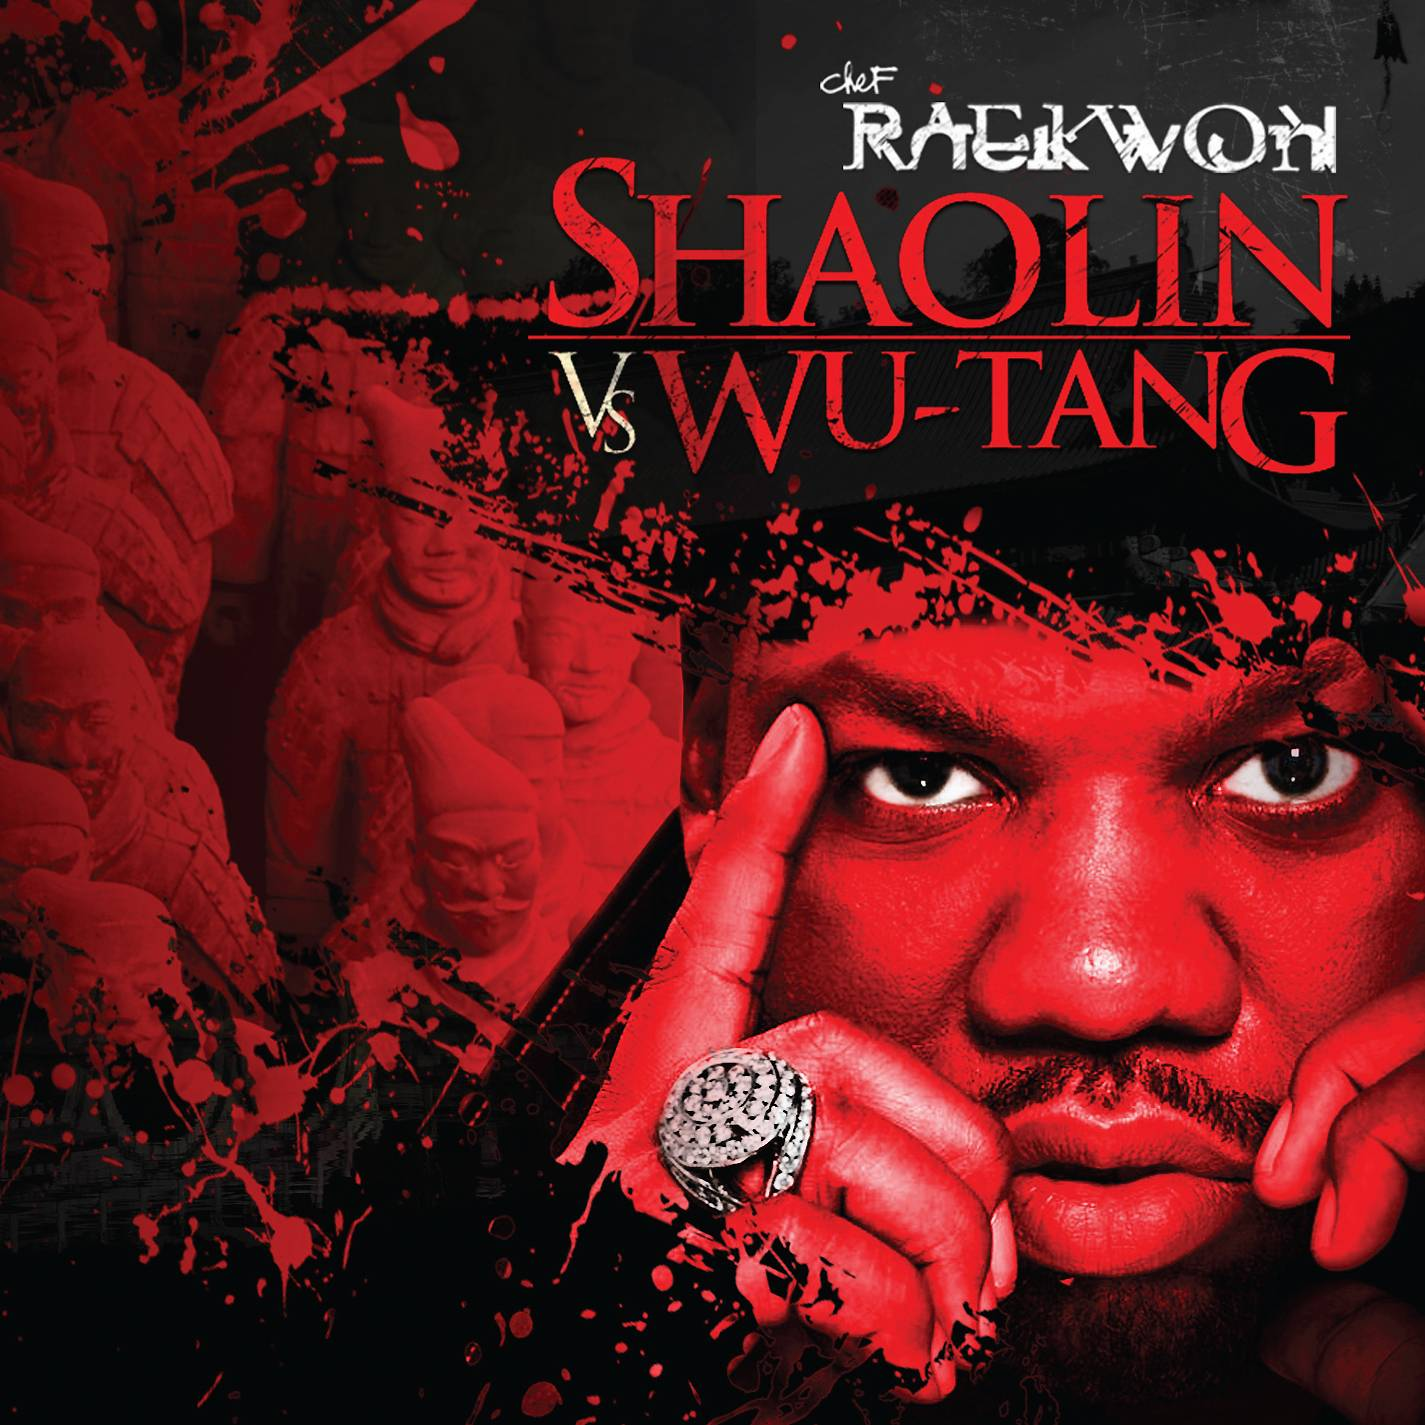 """13. Raekwon ? Shaolin vs. Wu-Tang (2011) - This is the sound of momentum. No, Shaolin vs. Wu-Tang doesn't attempt to tap into the dramatic, cinematic vein of its praise-worthy predecessor, Cuban Linx Pt. II. Instead, it has the loose feel of a late night rhyme cypher over a barrage of gut-punching beats. Rae's pen game is in fine form here and gets an added boost by some stellar assists (The Roots' criminally underrated Black Thought rips it on """"Masters of Our Fate,"""" while Nas holds it down on """"Rich & Black.""""). Yet when you boil it all down, this is an unofficial Wu-Tang Clan album, boasting some of the most potent crew collaborations since their '90s peak. When Meth, Deck and Ghost go line for line with Raekwon, magic happens. (Photo: EMI Records)"""